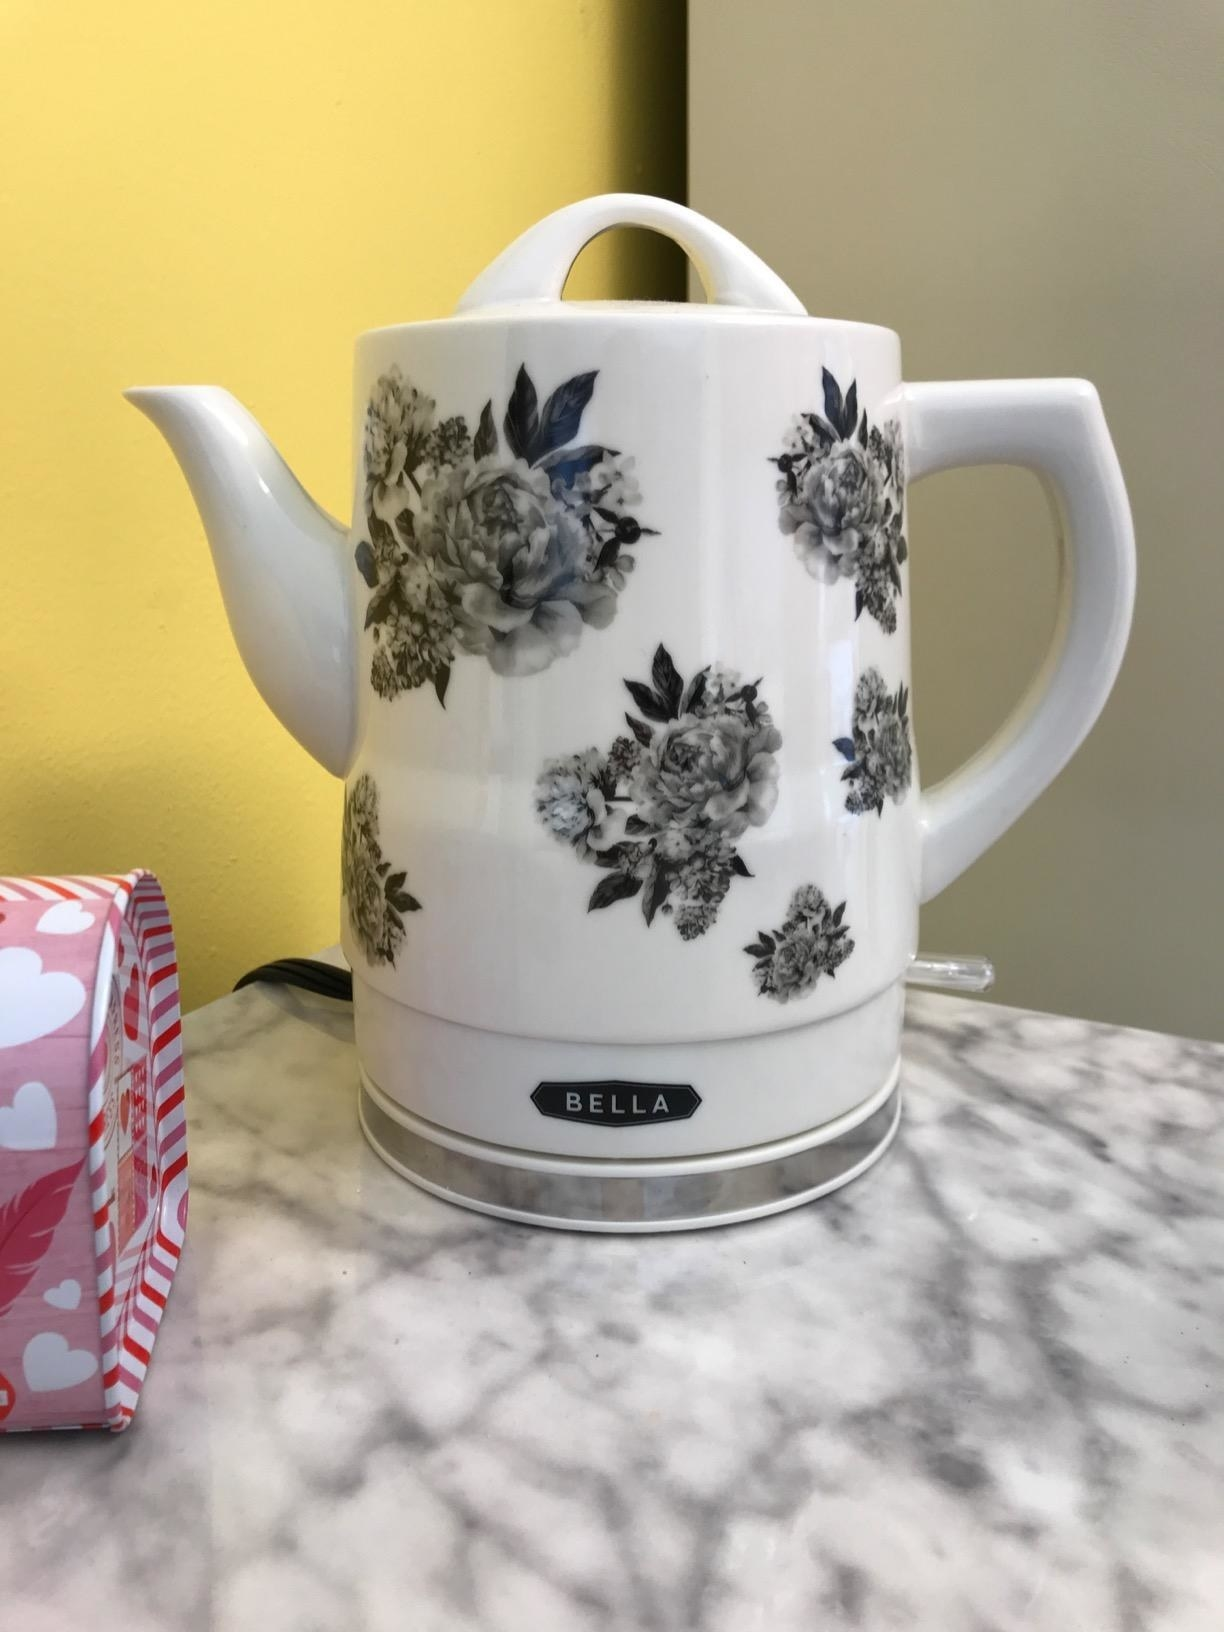 A white electric kettle with black floral designs all over it